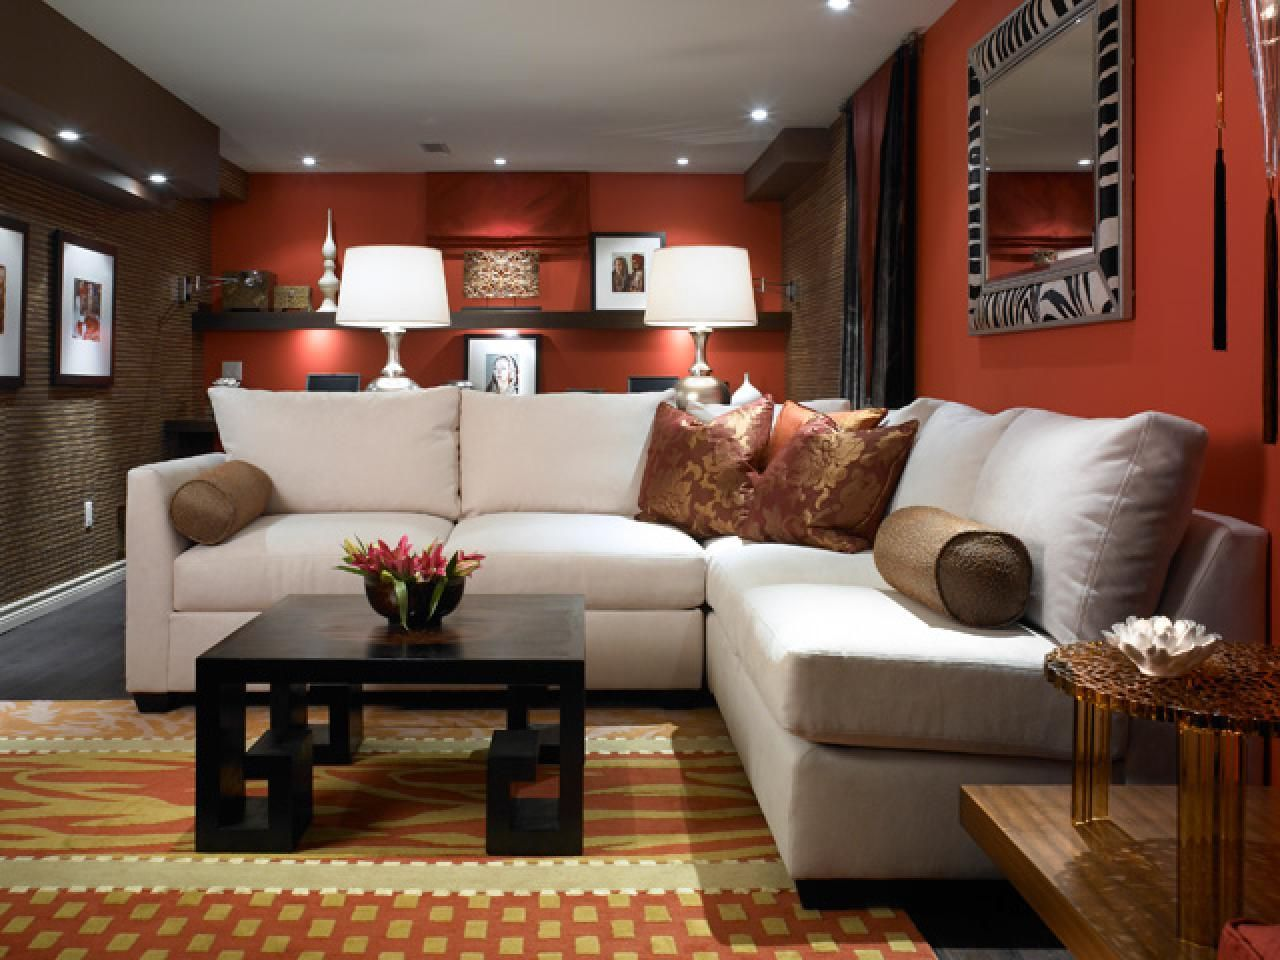 Basement Living Room Designs Glamorous Basement Makeover Ideas From Candice Olson  Basement Makeover Inspiration